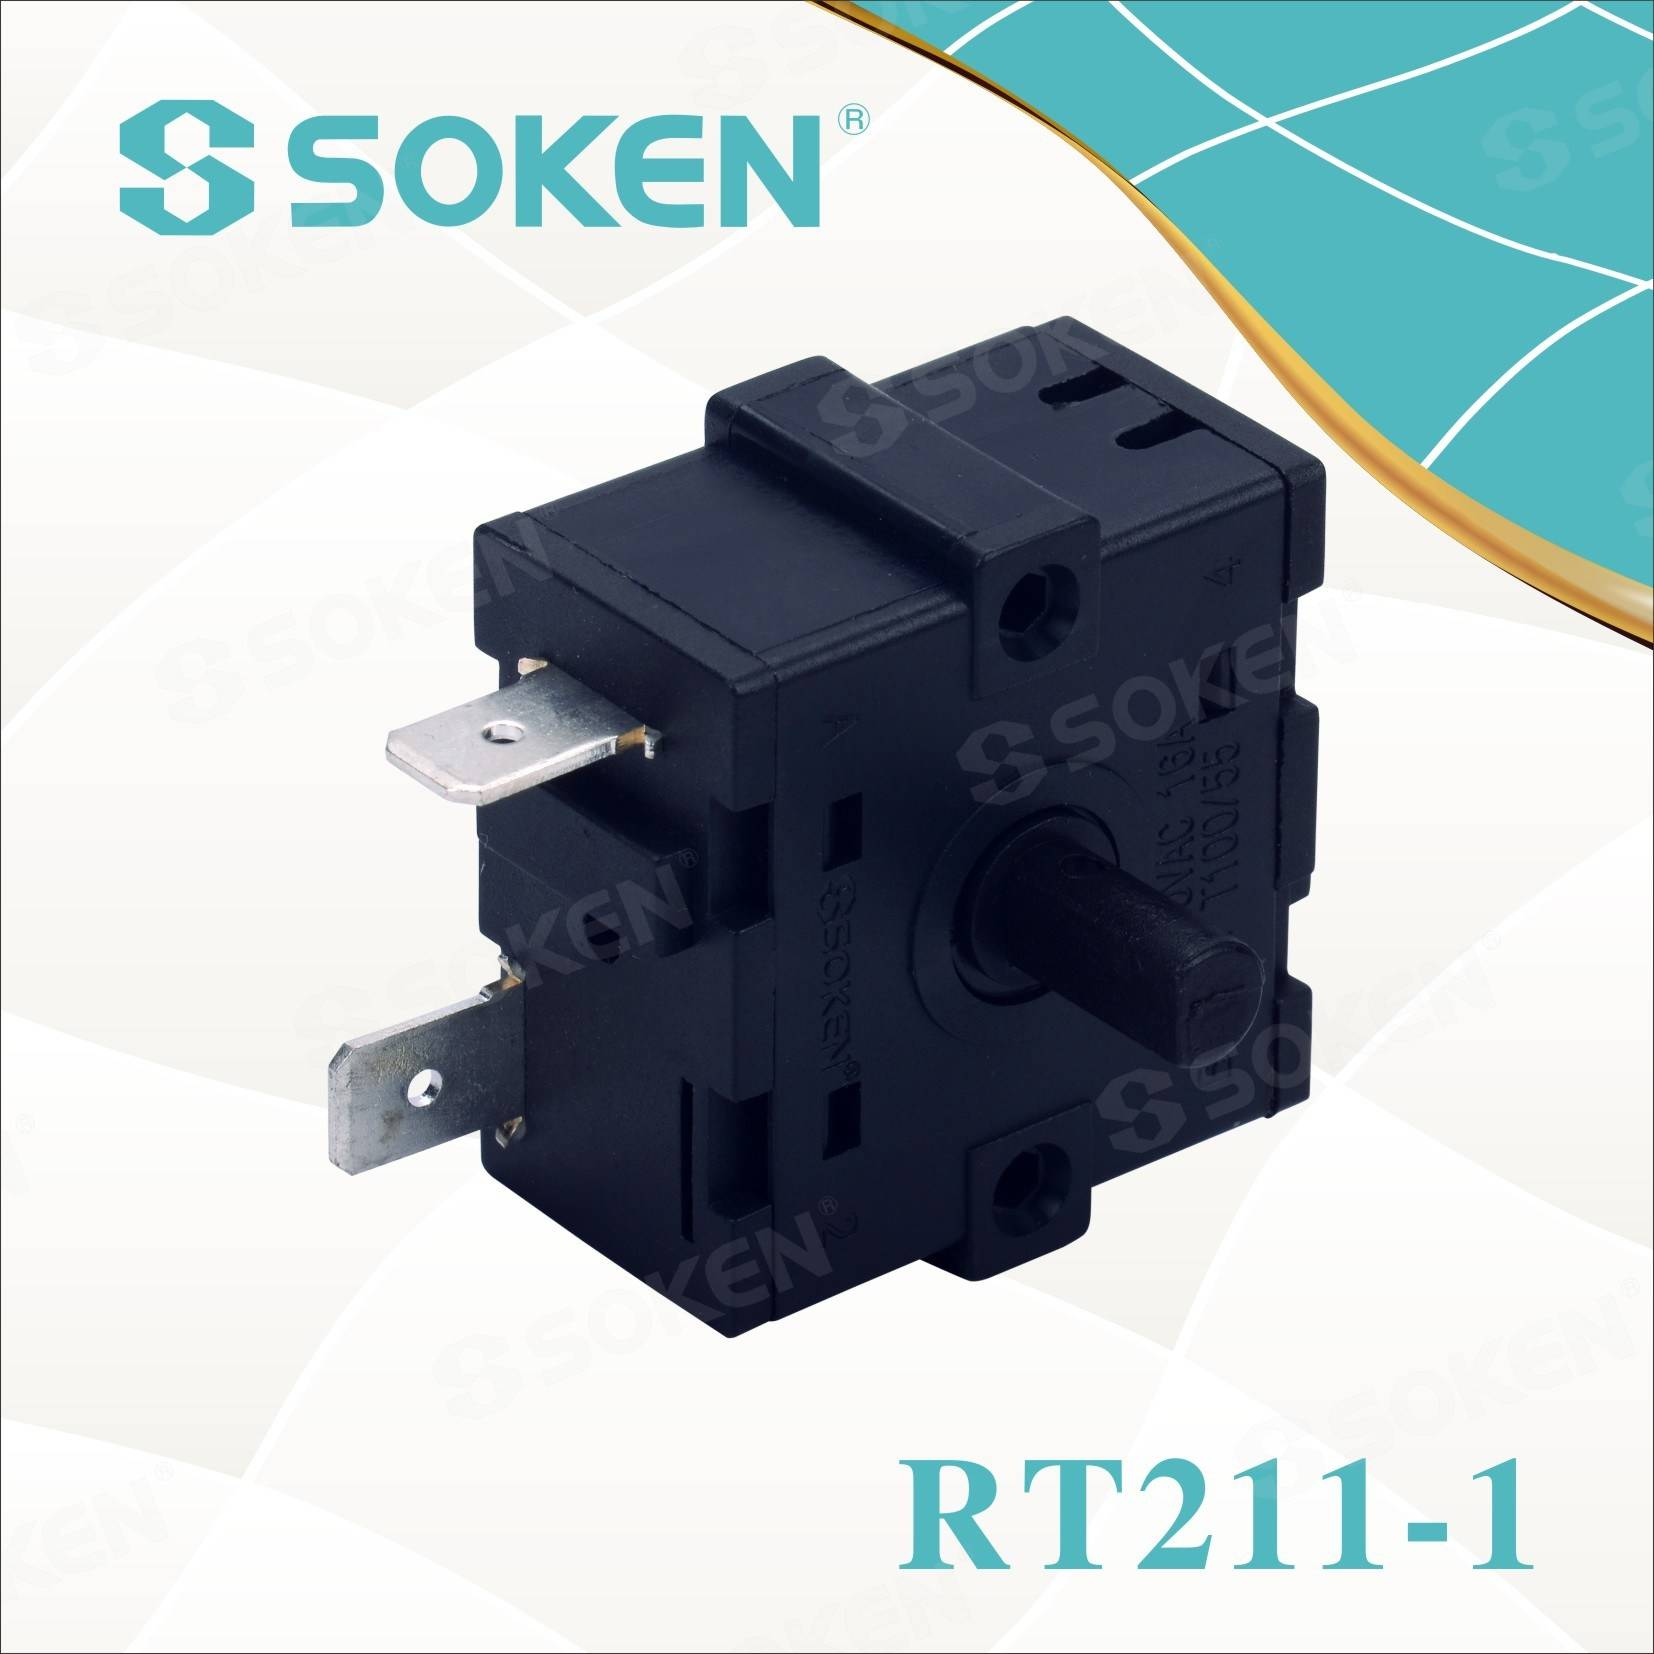 Soken Water Heater jdur Switch